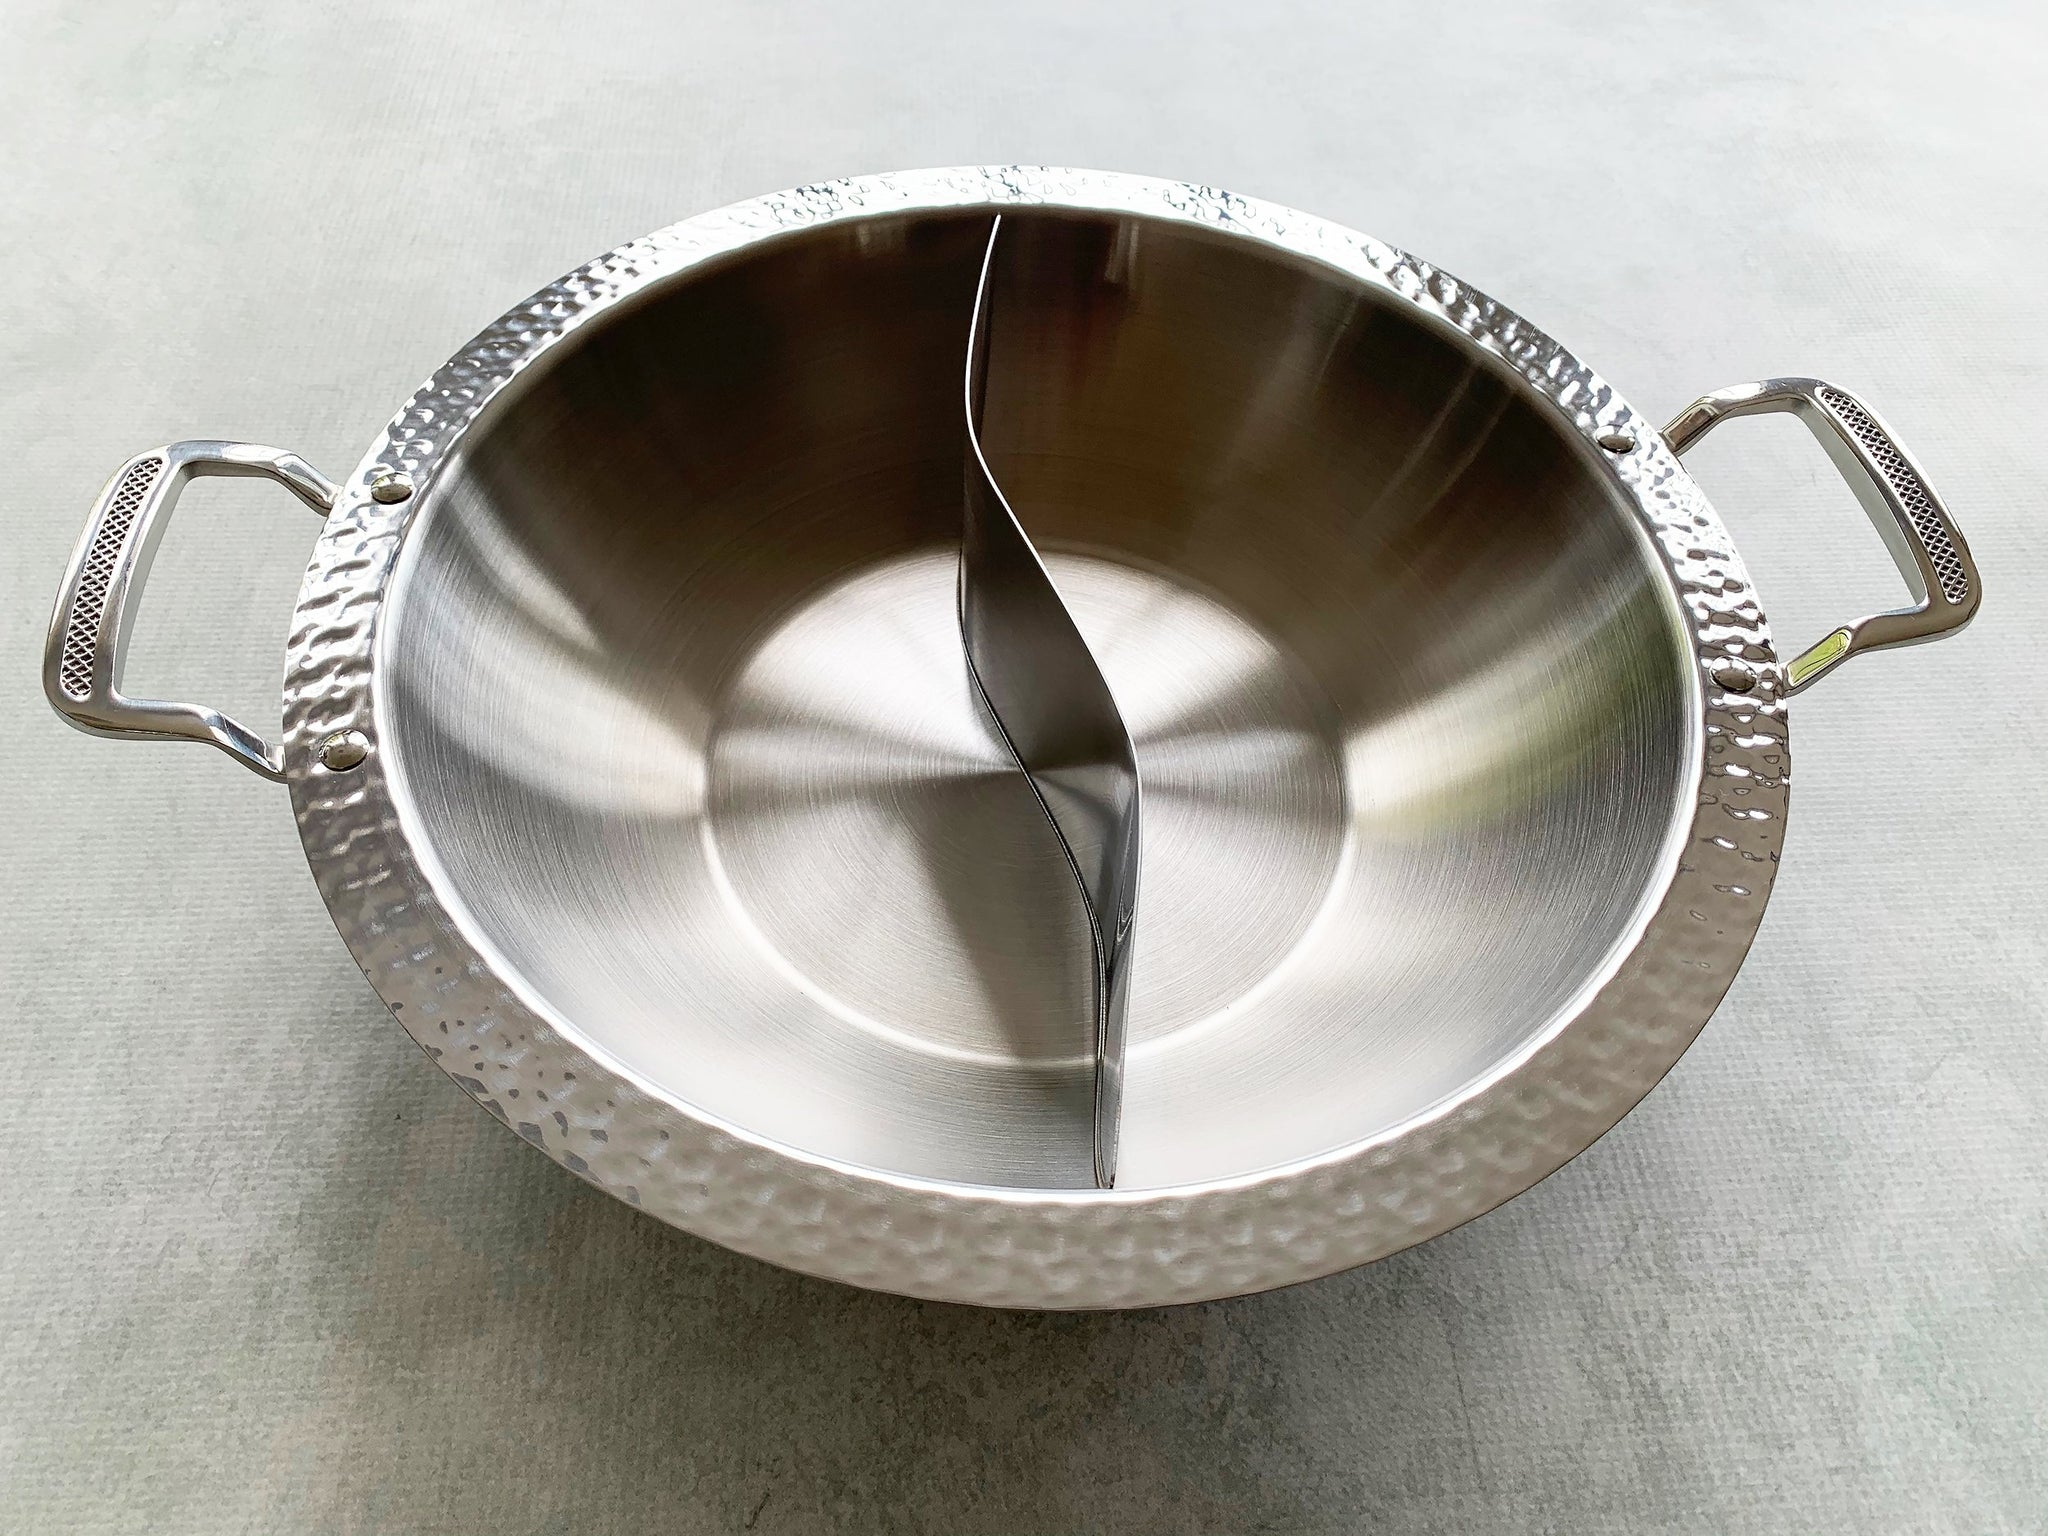 Yin-Yang Hot Pot (Heavy Gauge Stainless Steel) for International